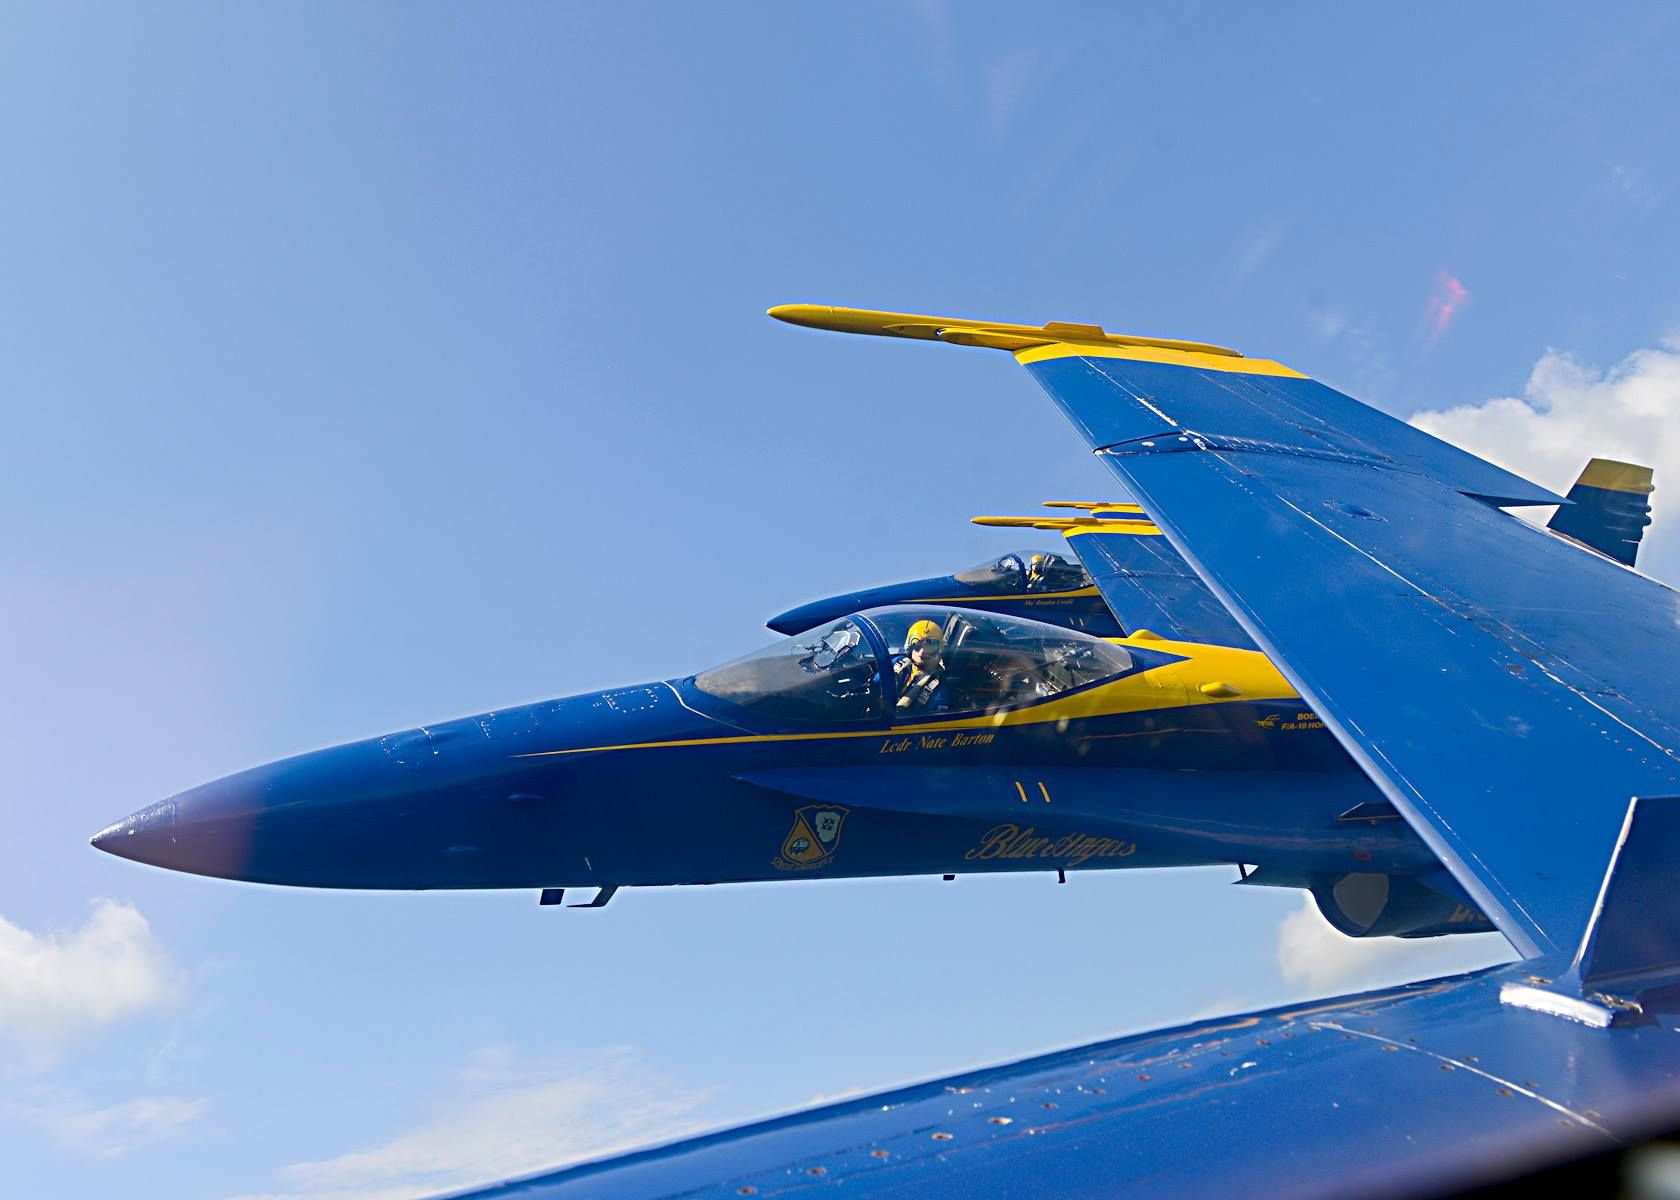 The Blue Angels return home for the NAS Pensacola